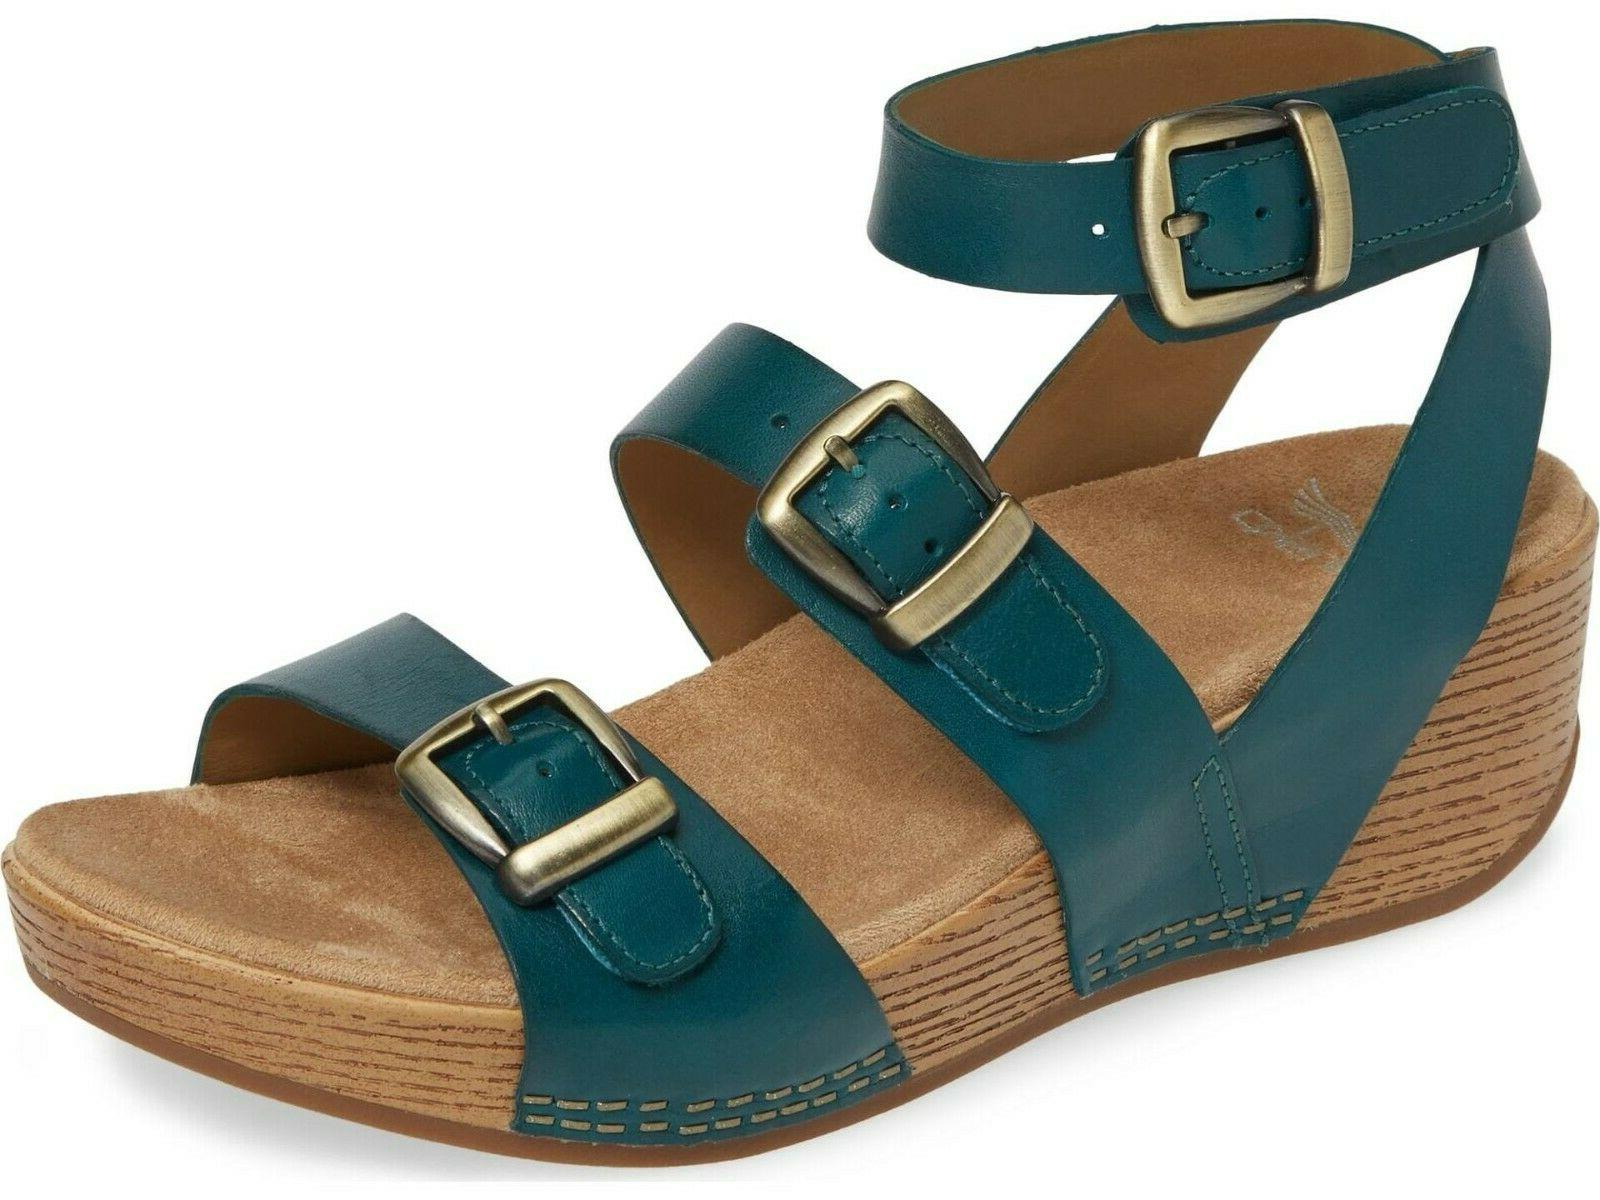 lou wedge sandal in turquoise new in